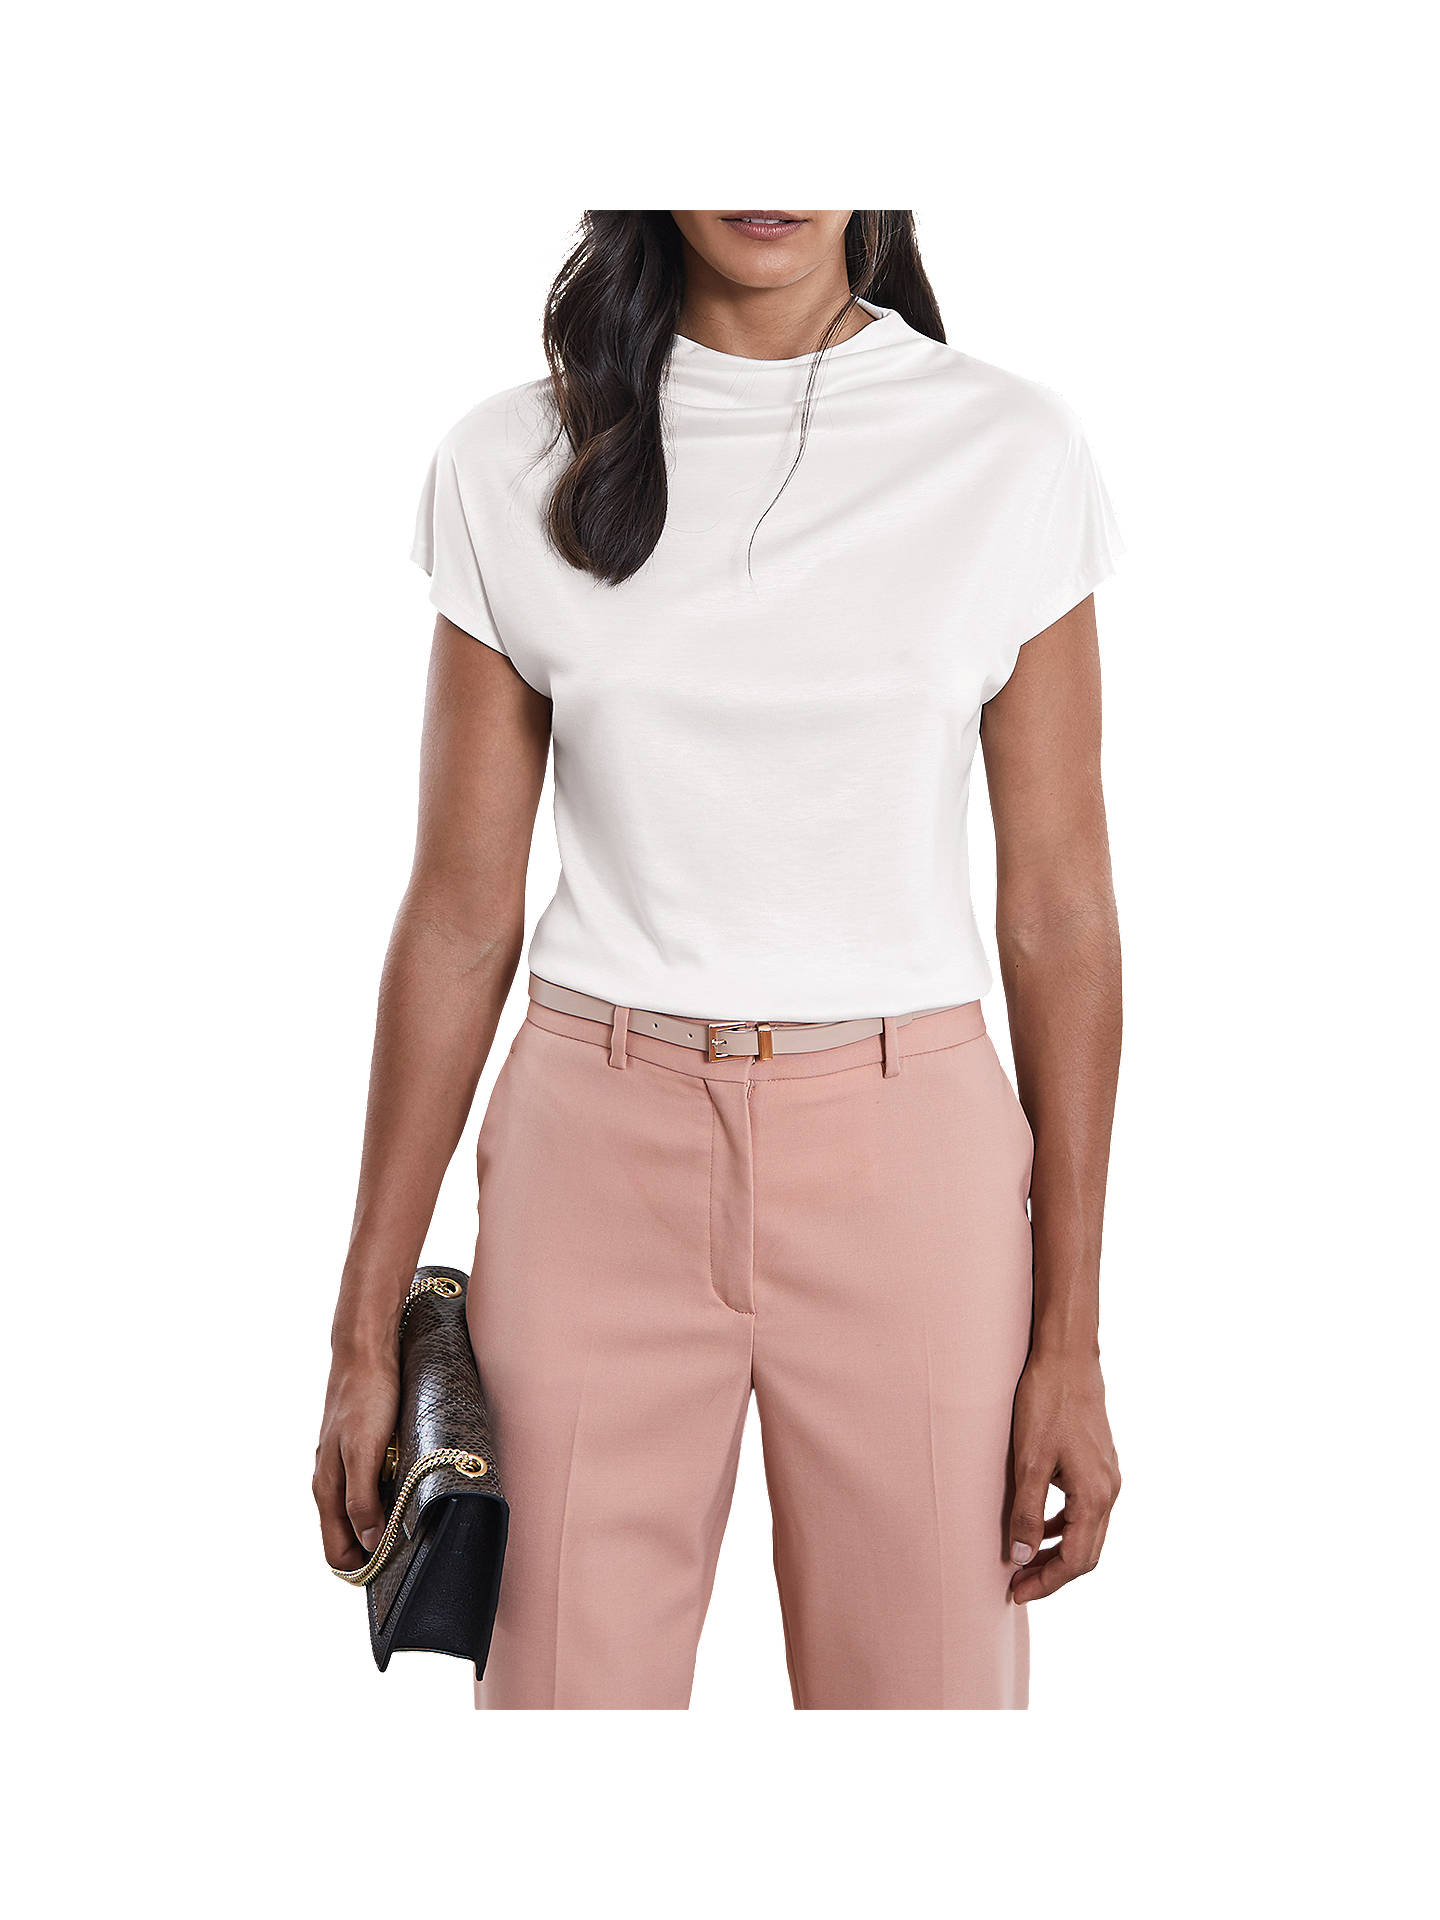 BuyReiss Pax High Neck Top, White, XS Online at johnlewis.com